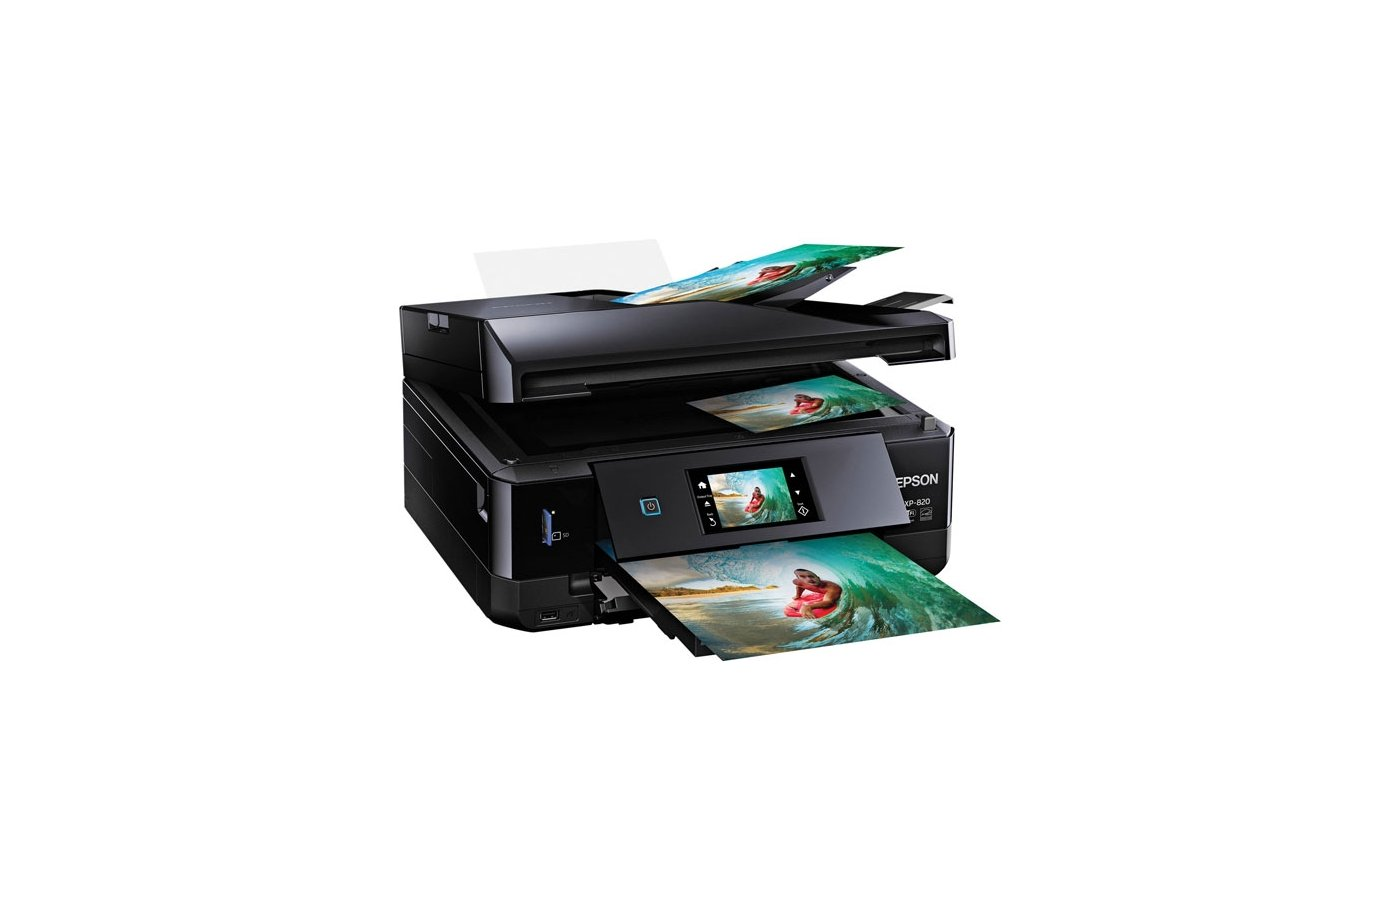 МФУ Epson Expression Premium XP-820 /C11CD99402/